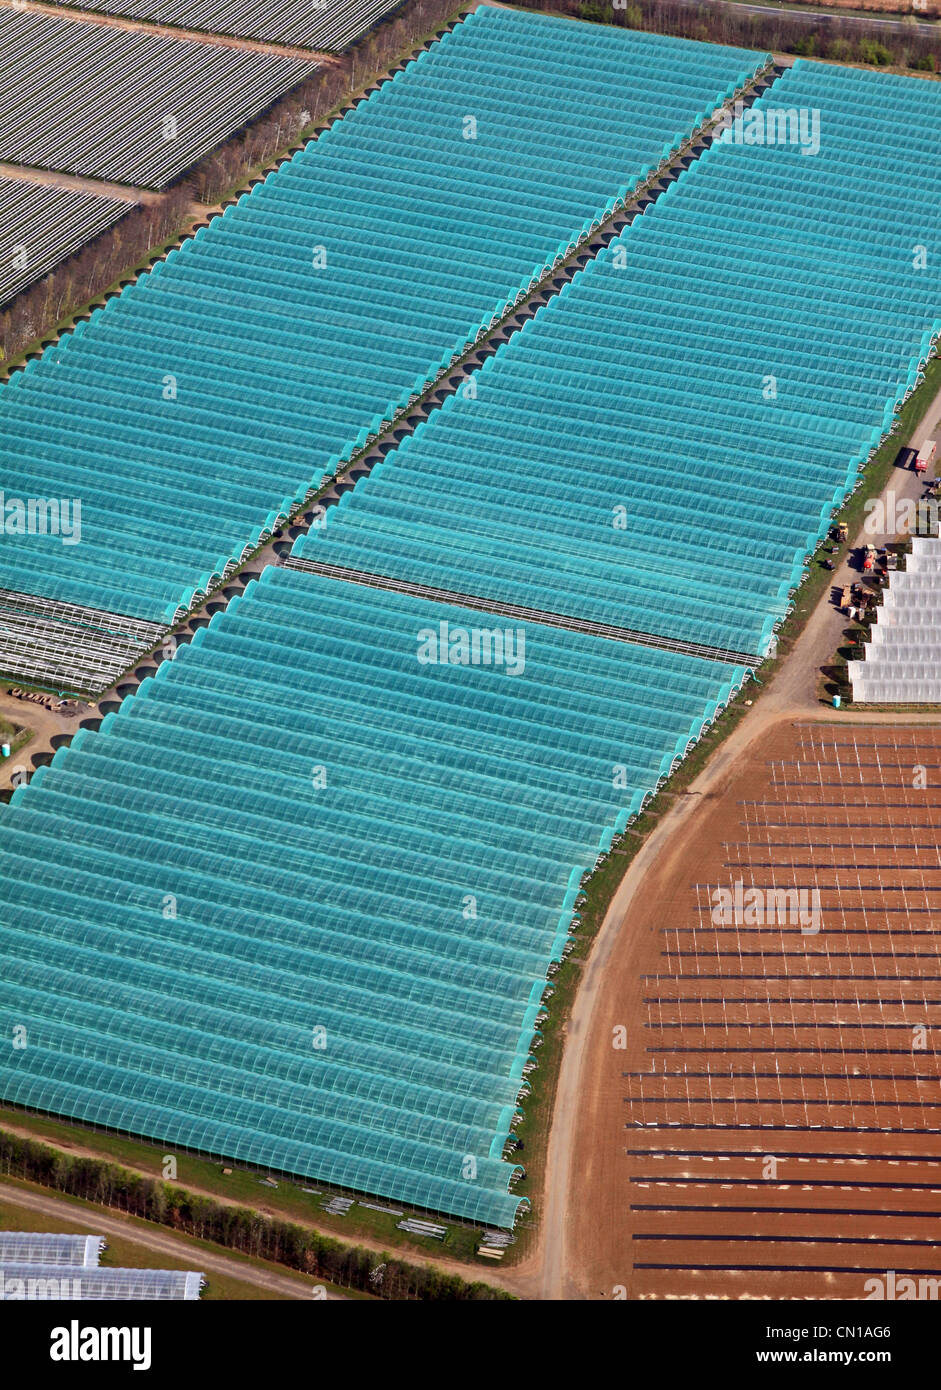 Aerial view of commercial polytunnels at Makins commercial growers business at Garforth near Leeds taken in 2012 Stock Photo